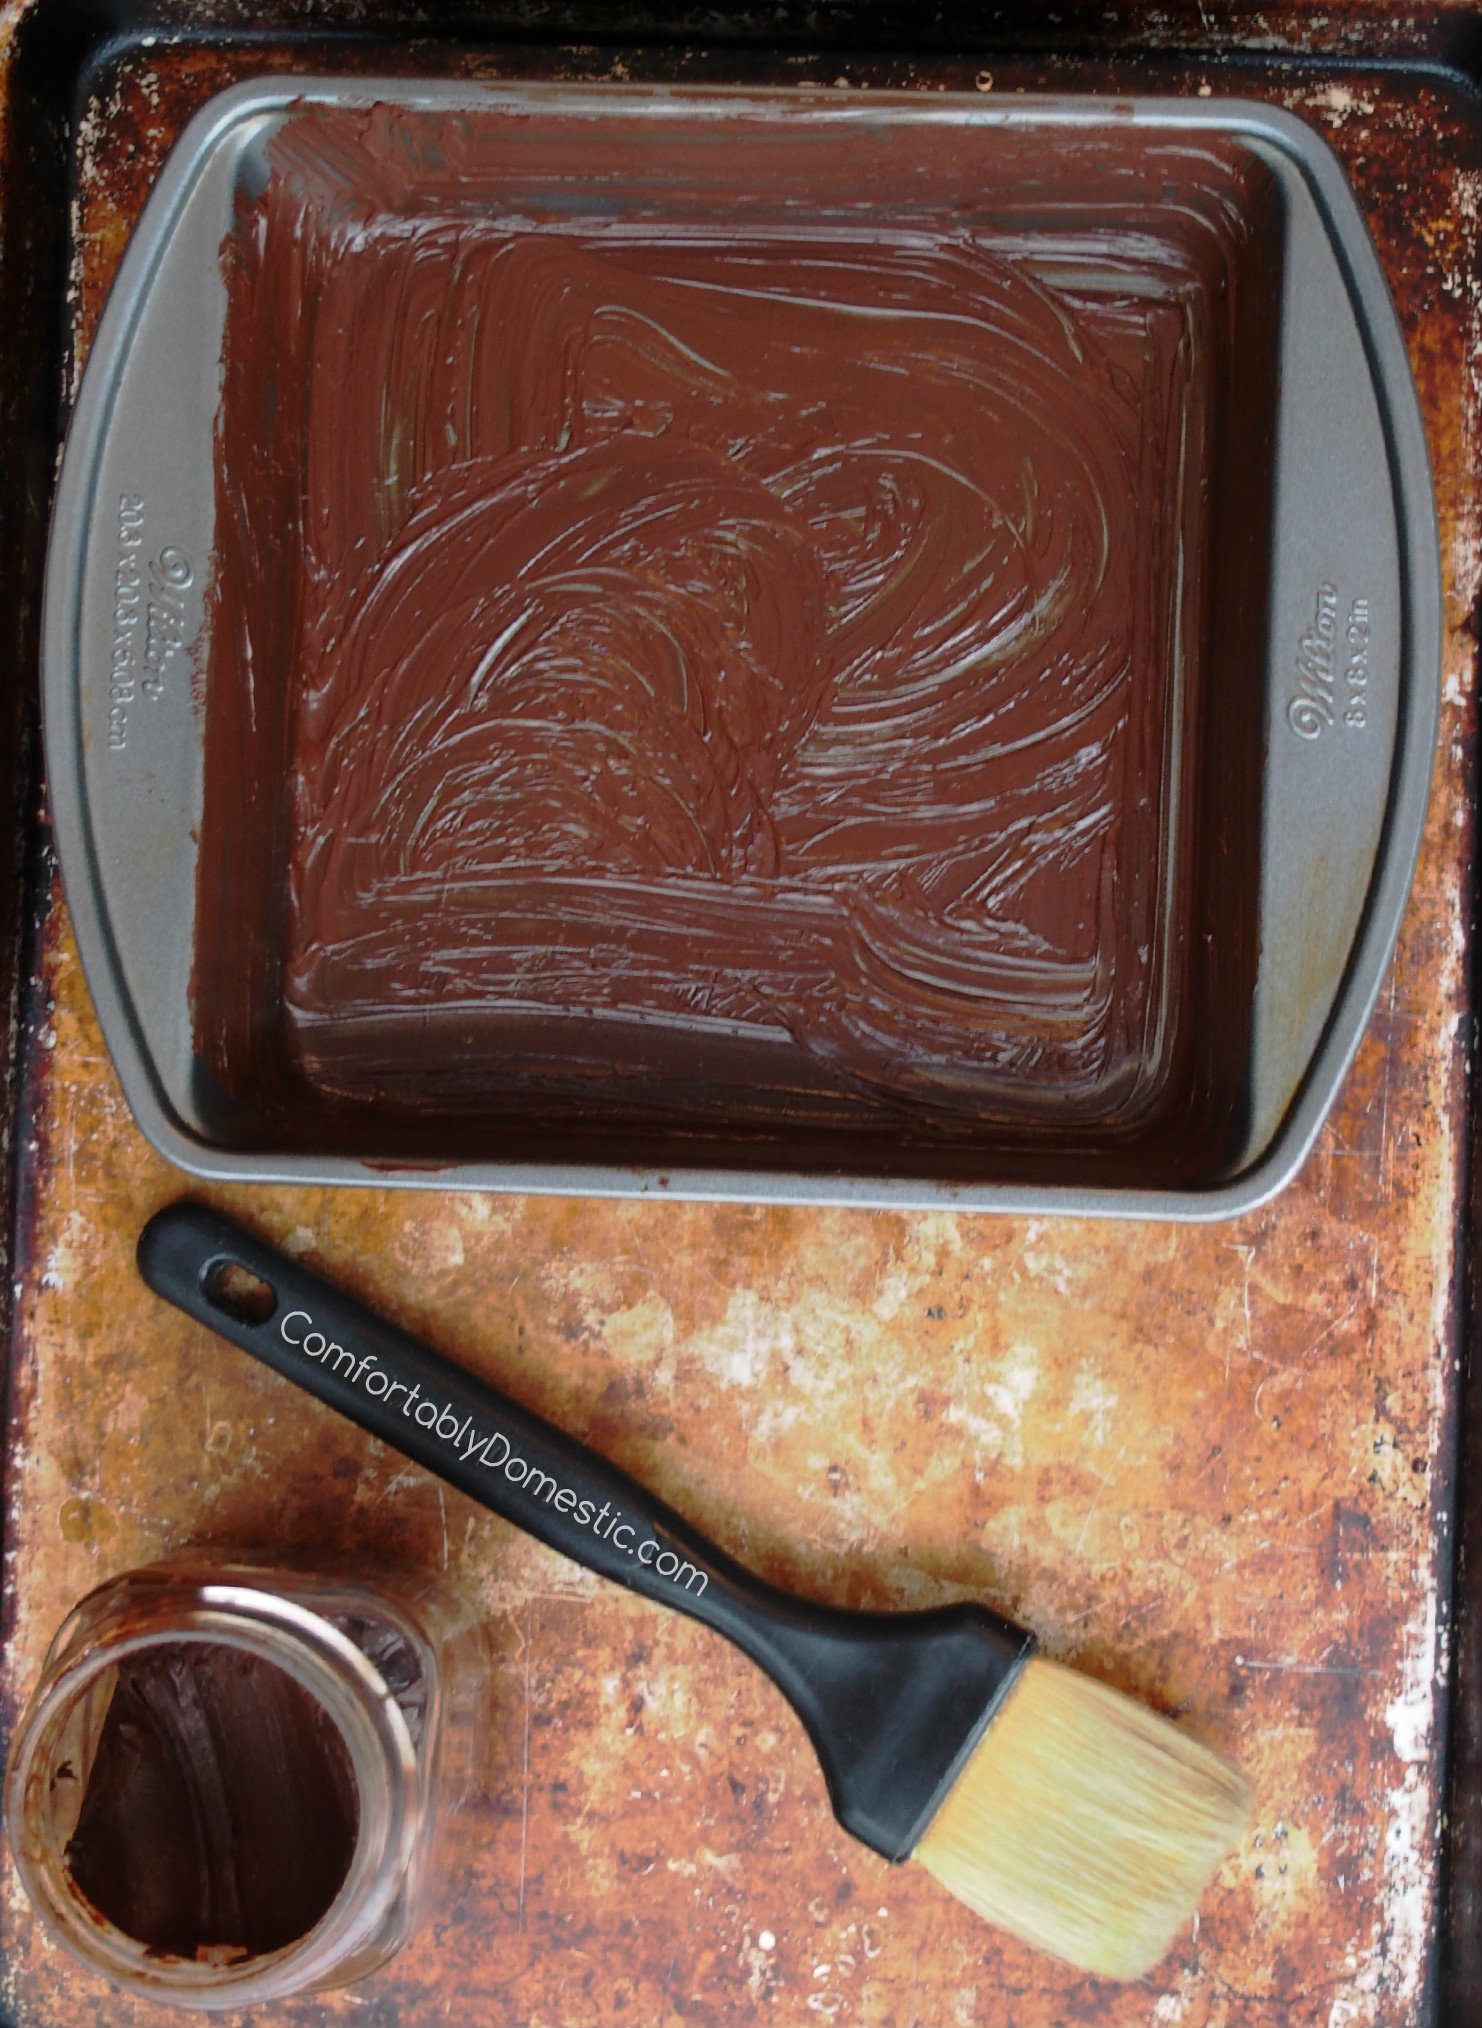 Chocolate Baking Lube is a DIY baking pan release - It inexpensively prepares baking pans to release chocolate baked goods beautifully, keeping them looking every bit chocolate in appearance, with no white residue! | ComfortablyDomestic.com